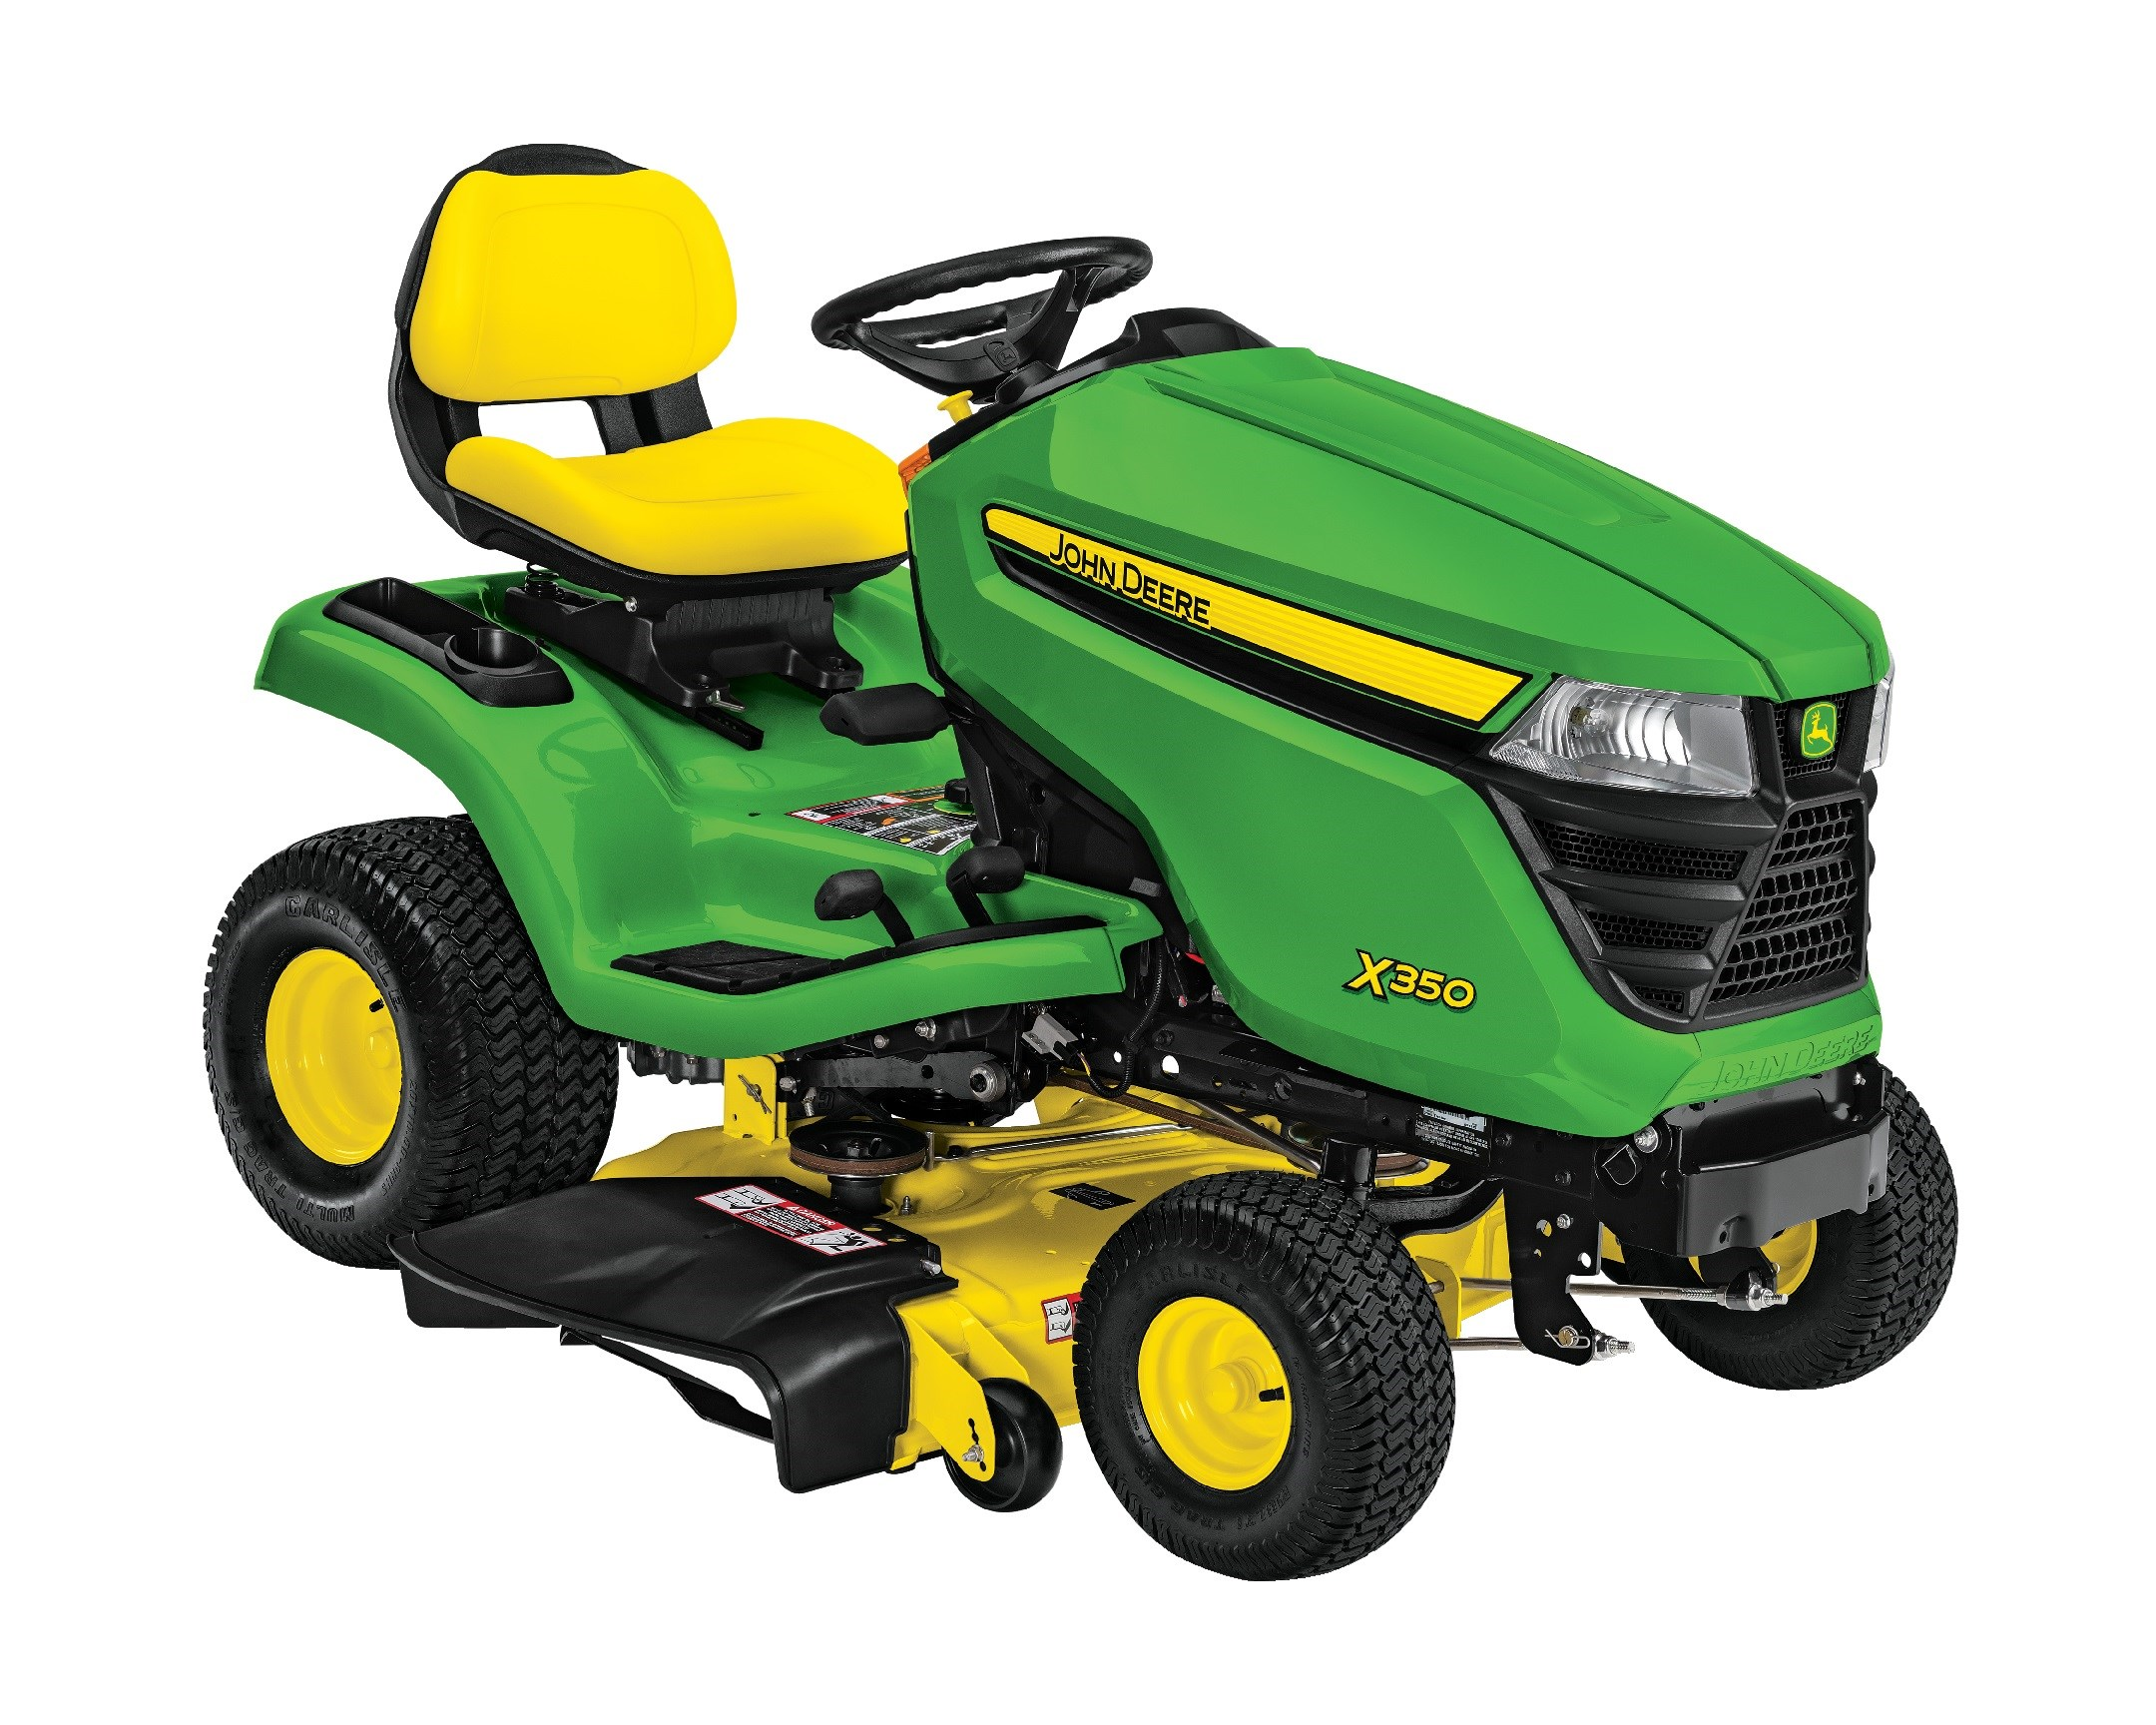 Lawnmower Stores additionally Ferris F210z 61 Zero Turn Lawn Mower Model 5901520 also 2413880 moreover Snapper 2691323 Zero Turn Mower 360z moreover Z122e. on echo commercial mowers